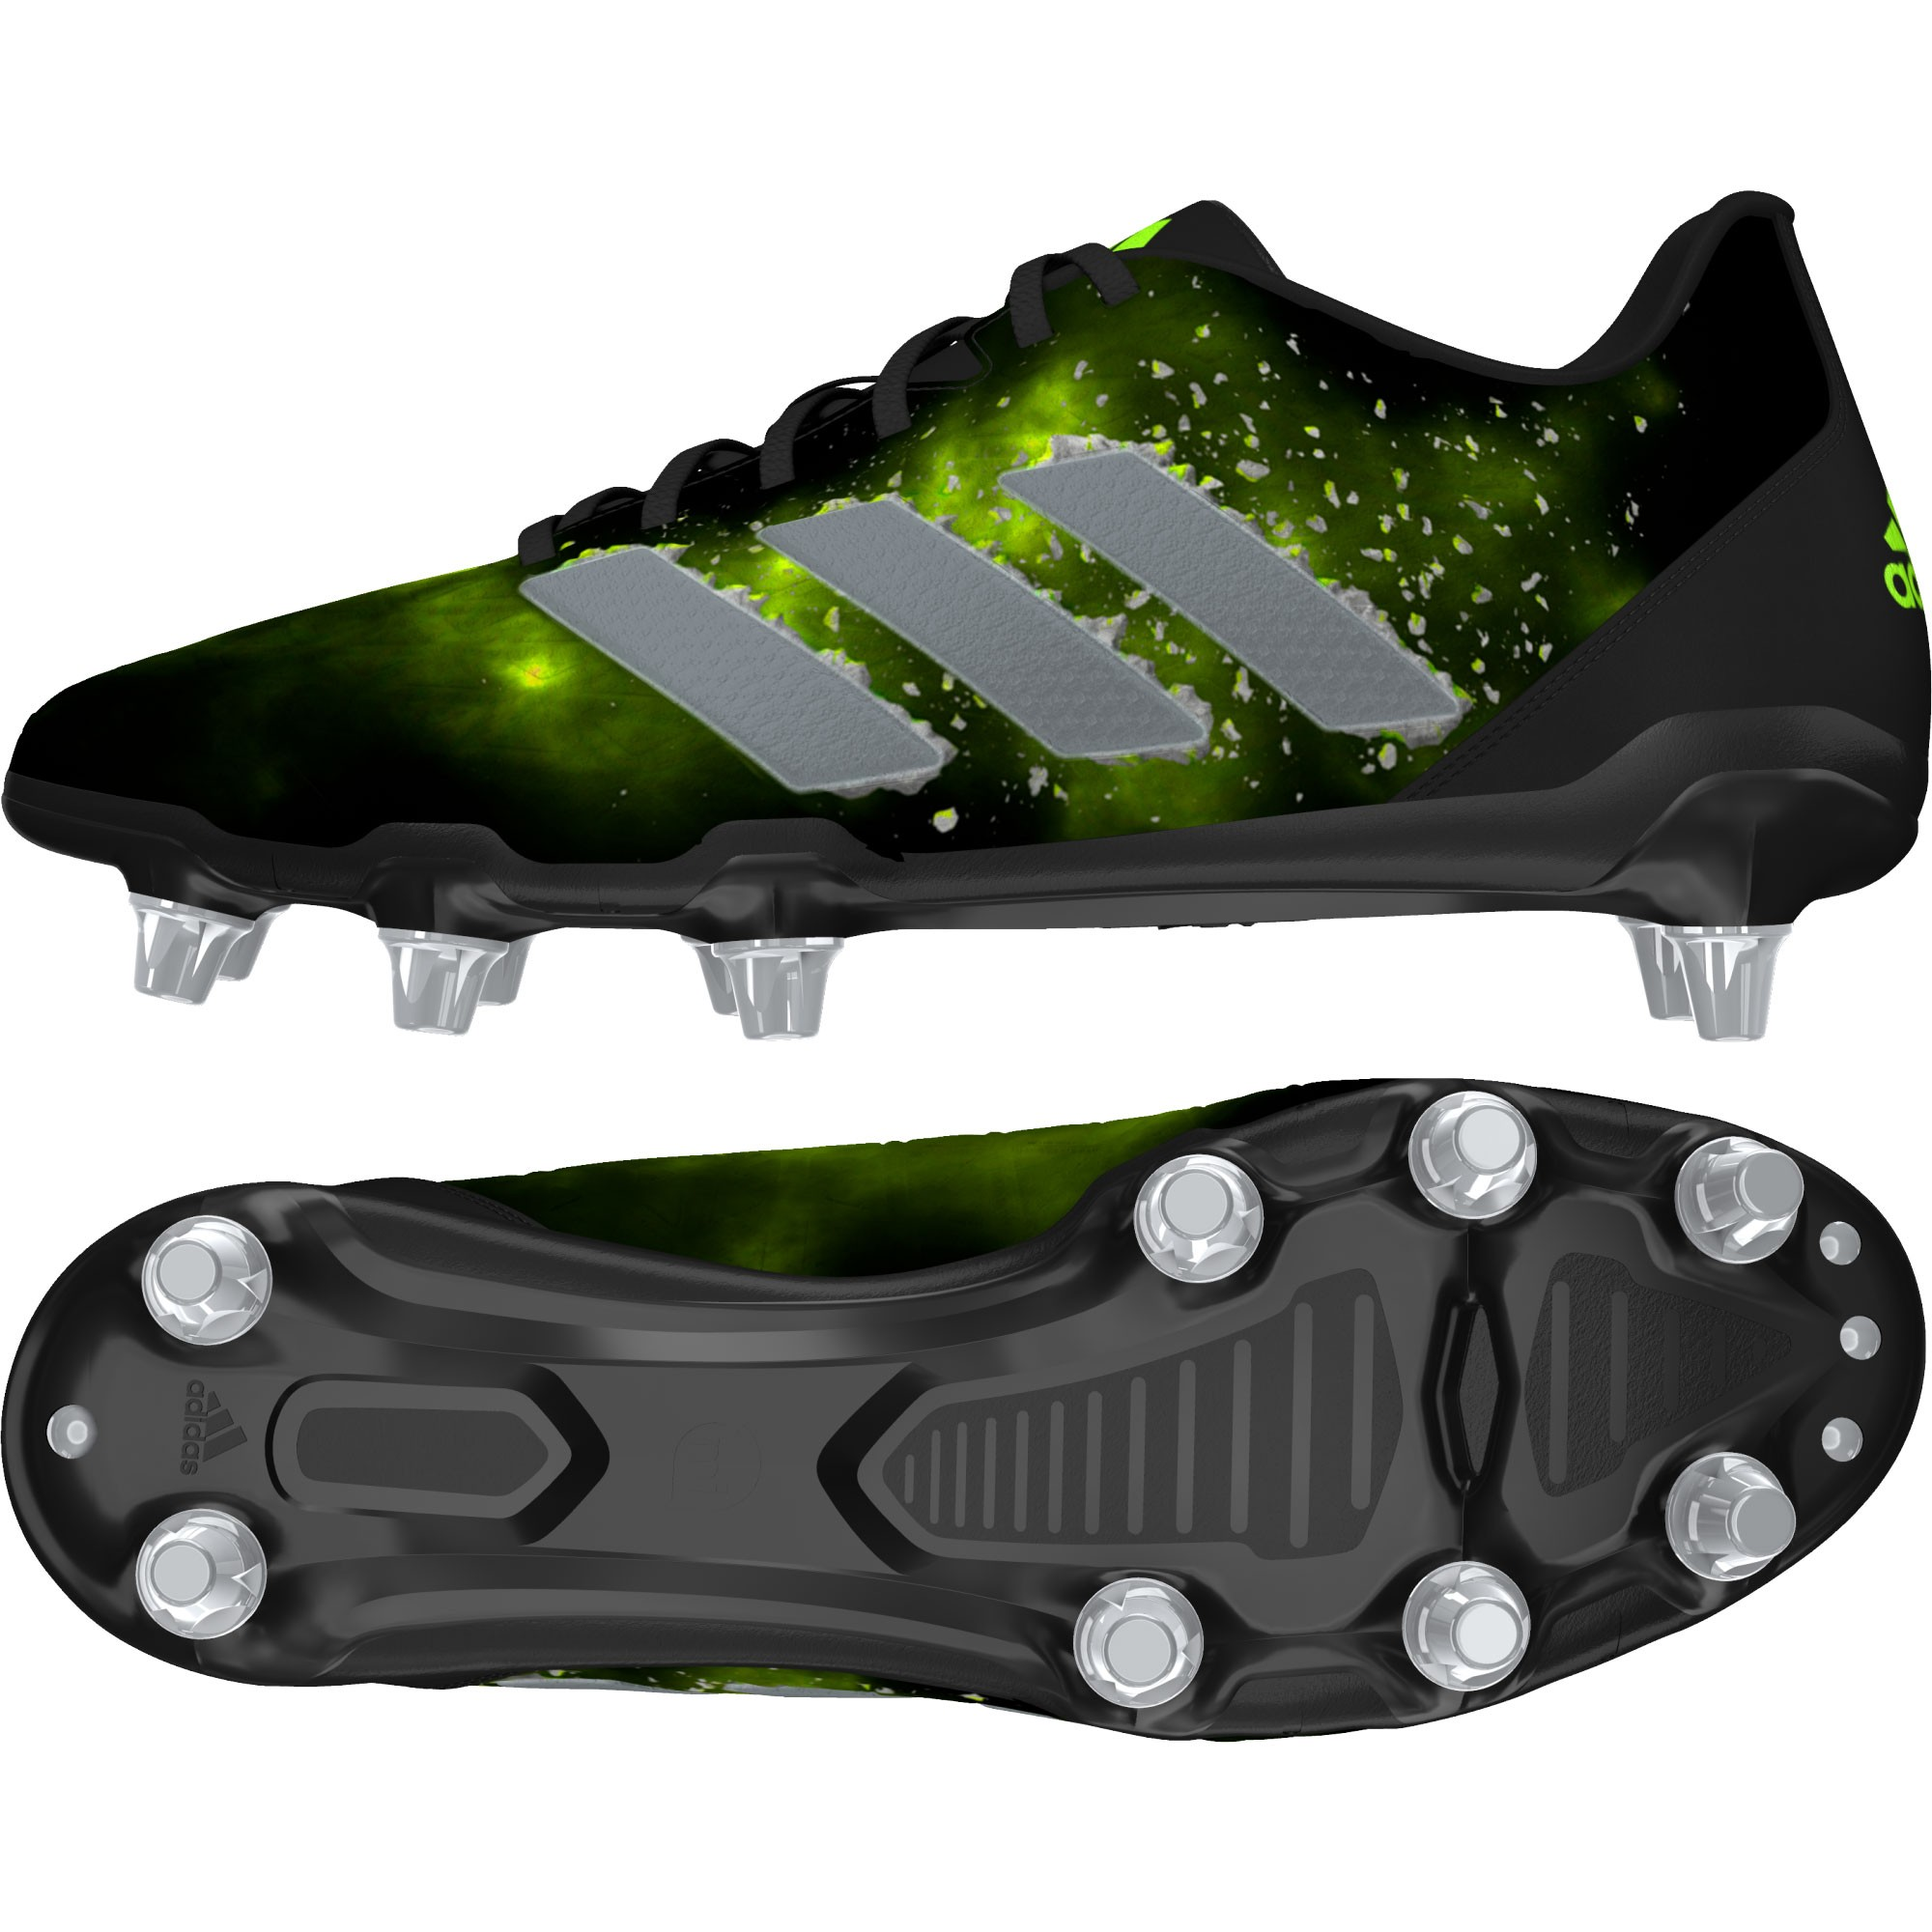 check out 0709b b7761 Chaussures Rugby Kakari Elite SG 8 crampons Noir-Vert  adidas ...